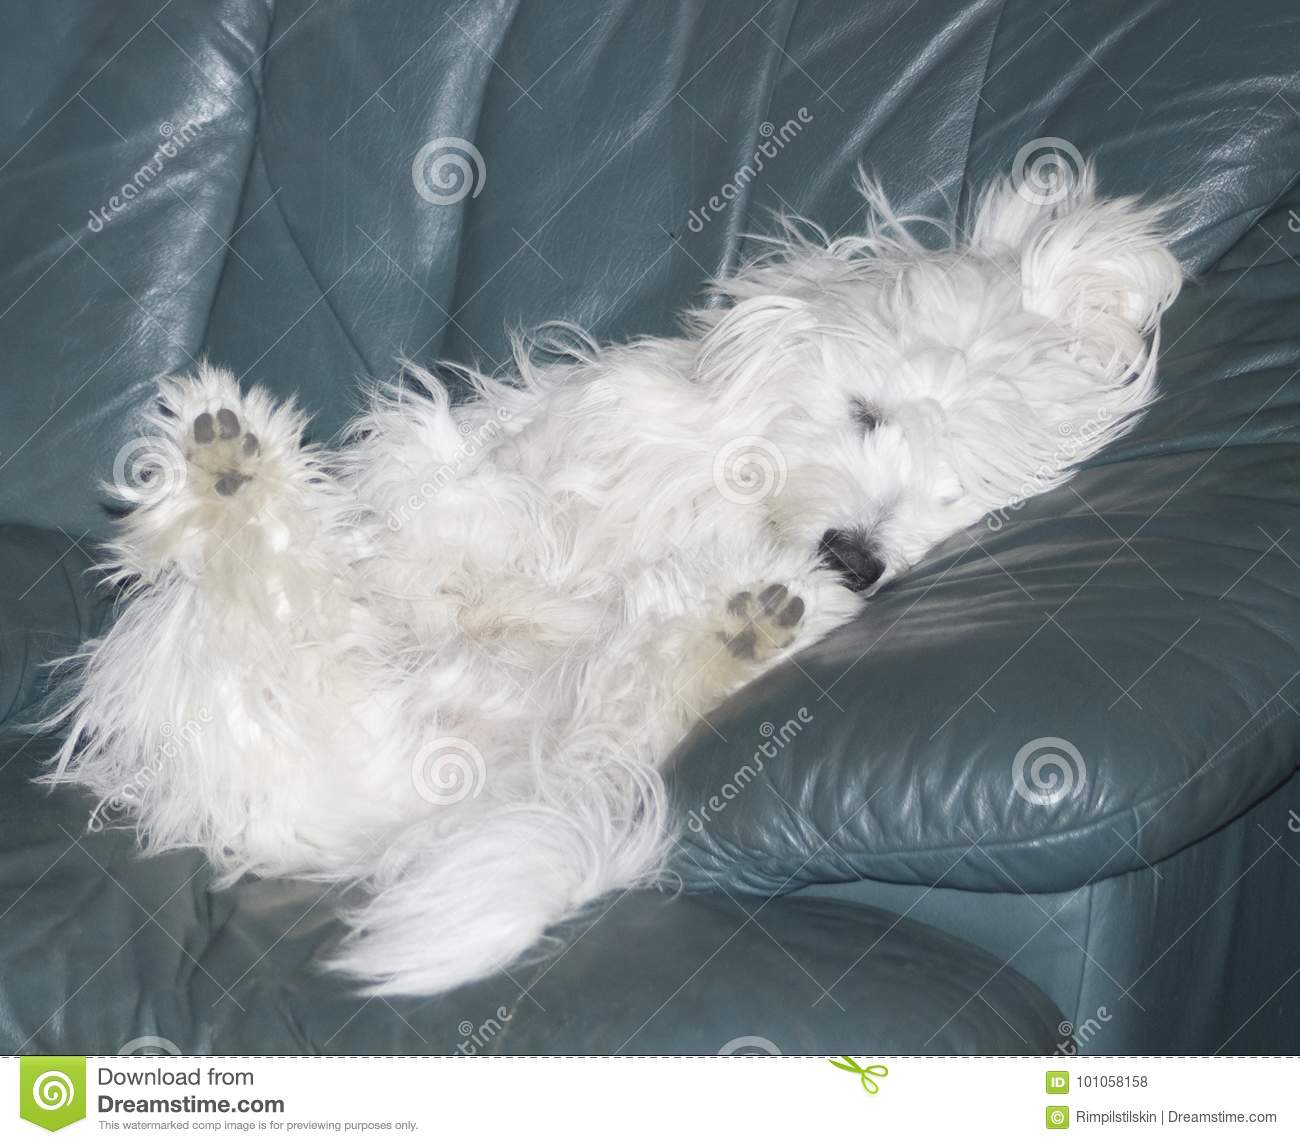 Admirable Small Coton De Tulear Puppy Sleeping On Leather Couch Stock Forskolin Free Trial Chair Design Images Forskolin Free Trialorg